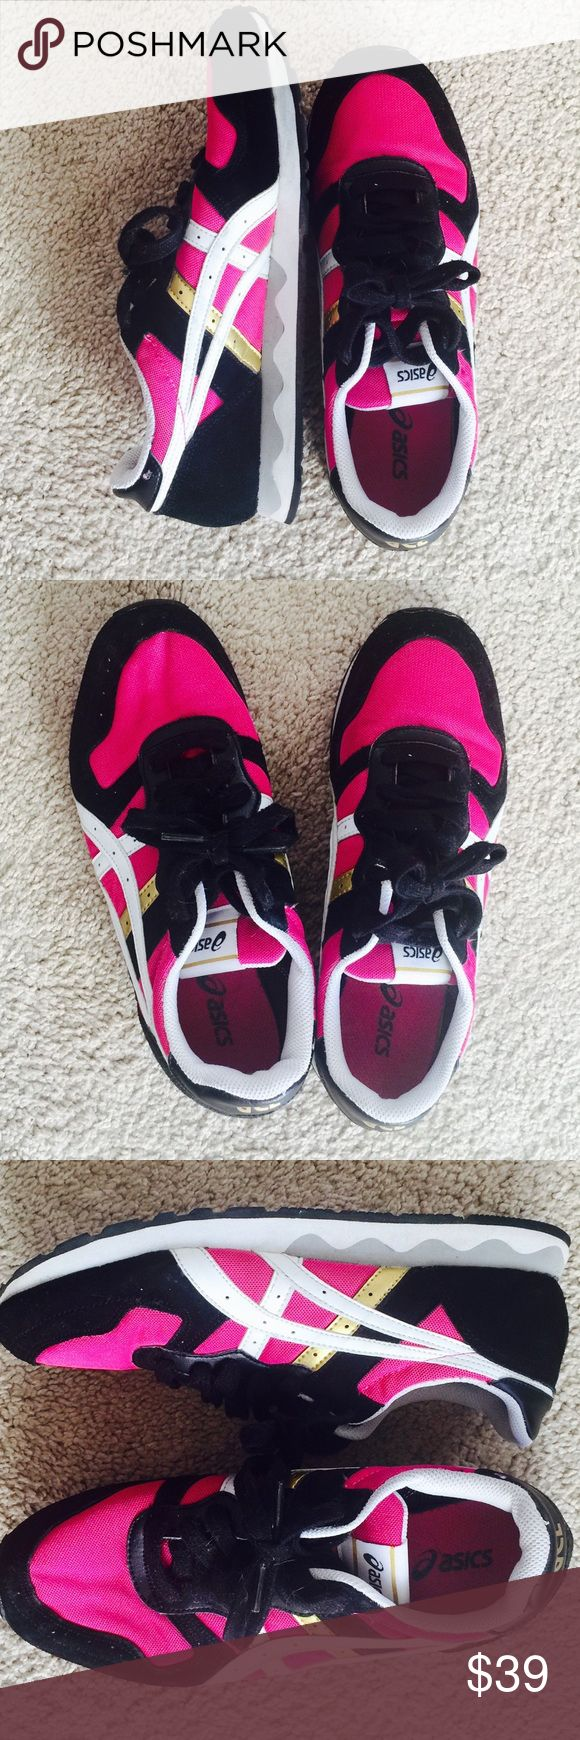 ❗️Asics Gel Hot Pink Athletic Shoes MSRP $98 ❗️Asics Gel Hot Pink & Black ️Athletic Shoes. Size 8. In great condition worn a handful of times. Make an offer! Holiday Blowout Sale ends TODAY--giving to the first reasonable offer I receive! Enjoy discounts on bundles! Asap shipping ;-) Asics Shoes Athletic Shoes